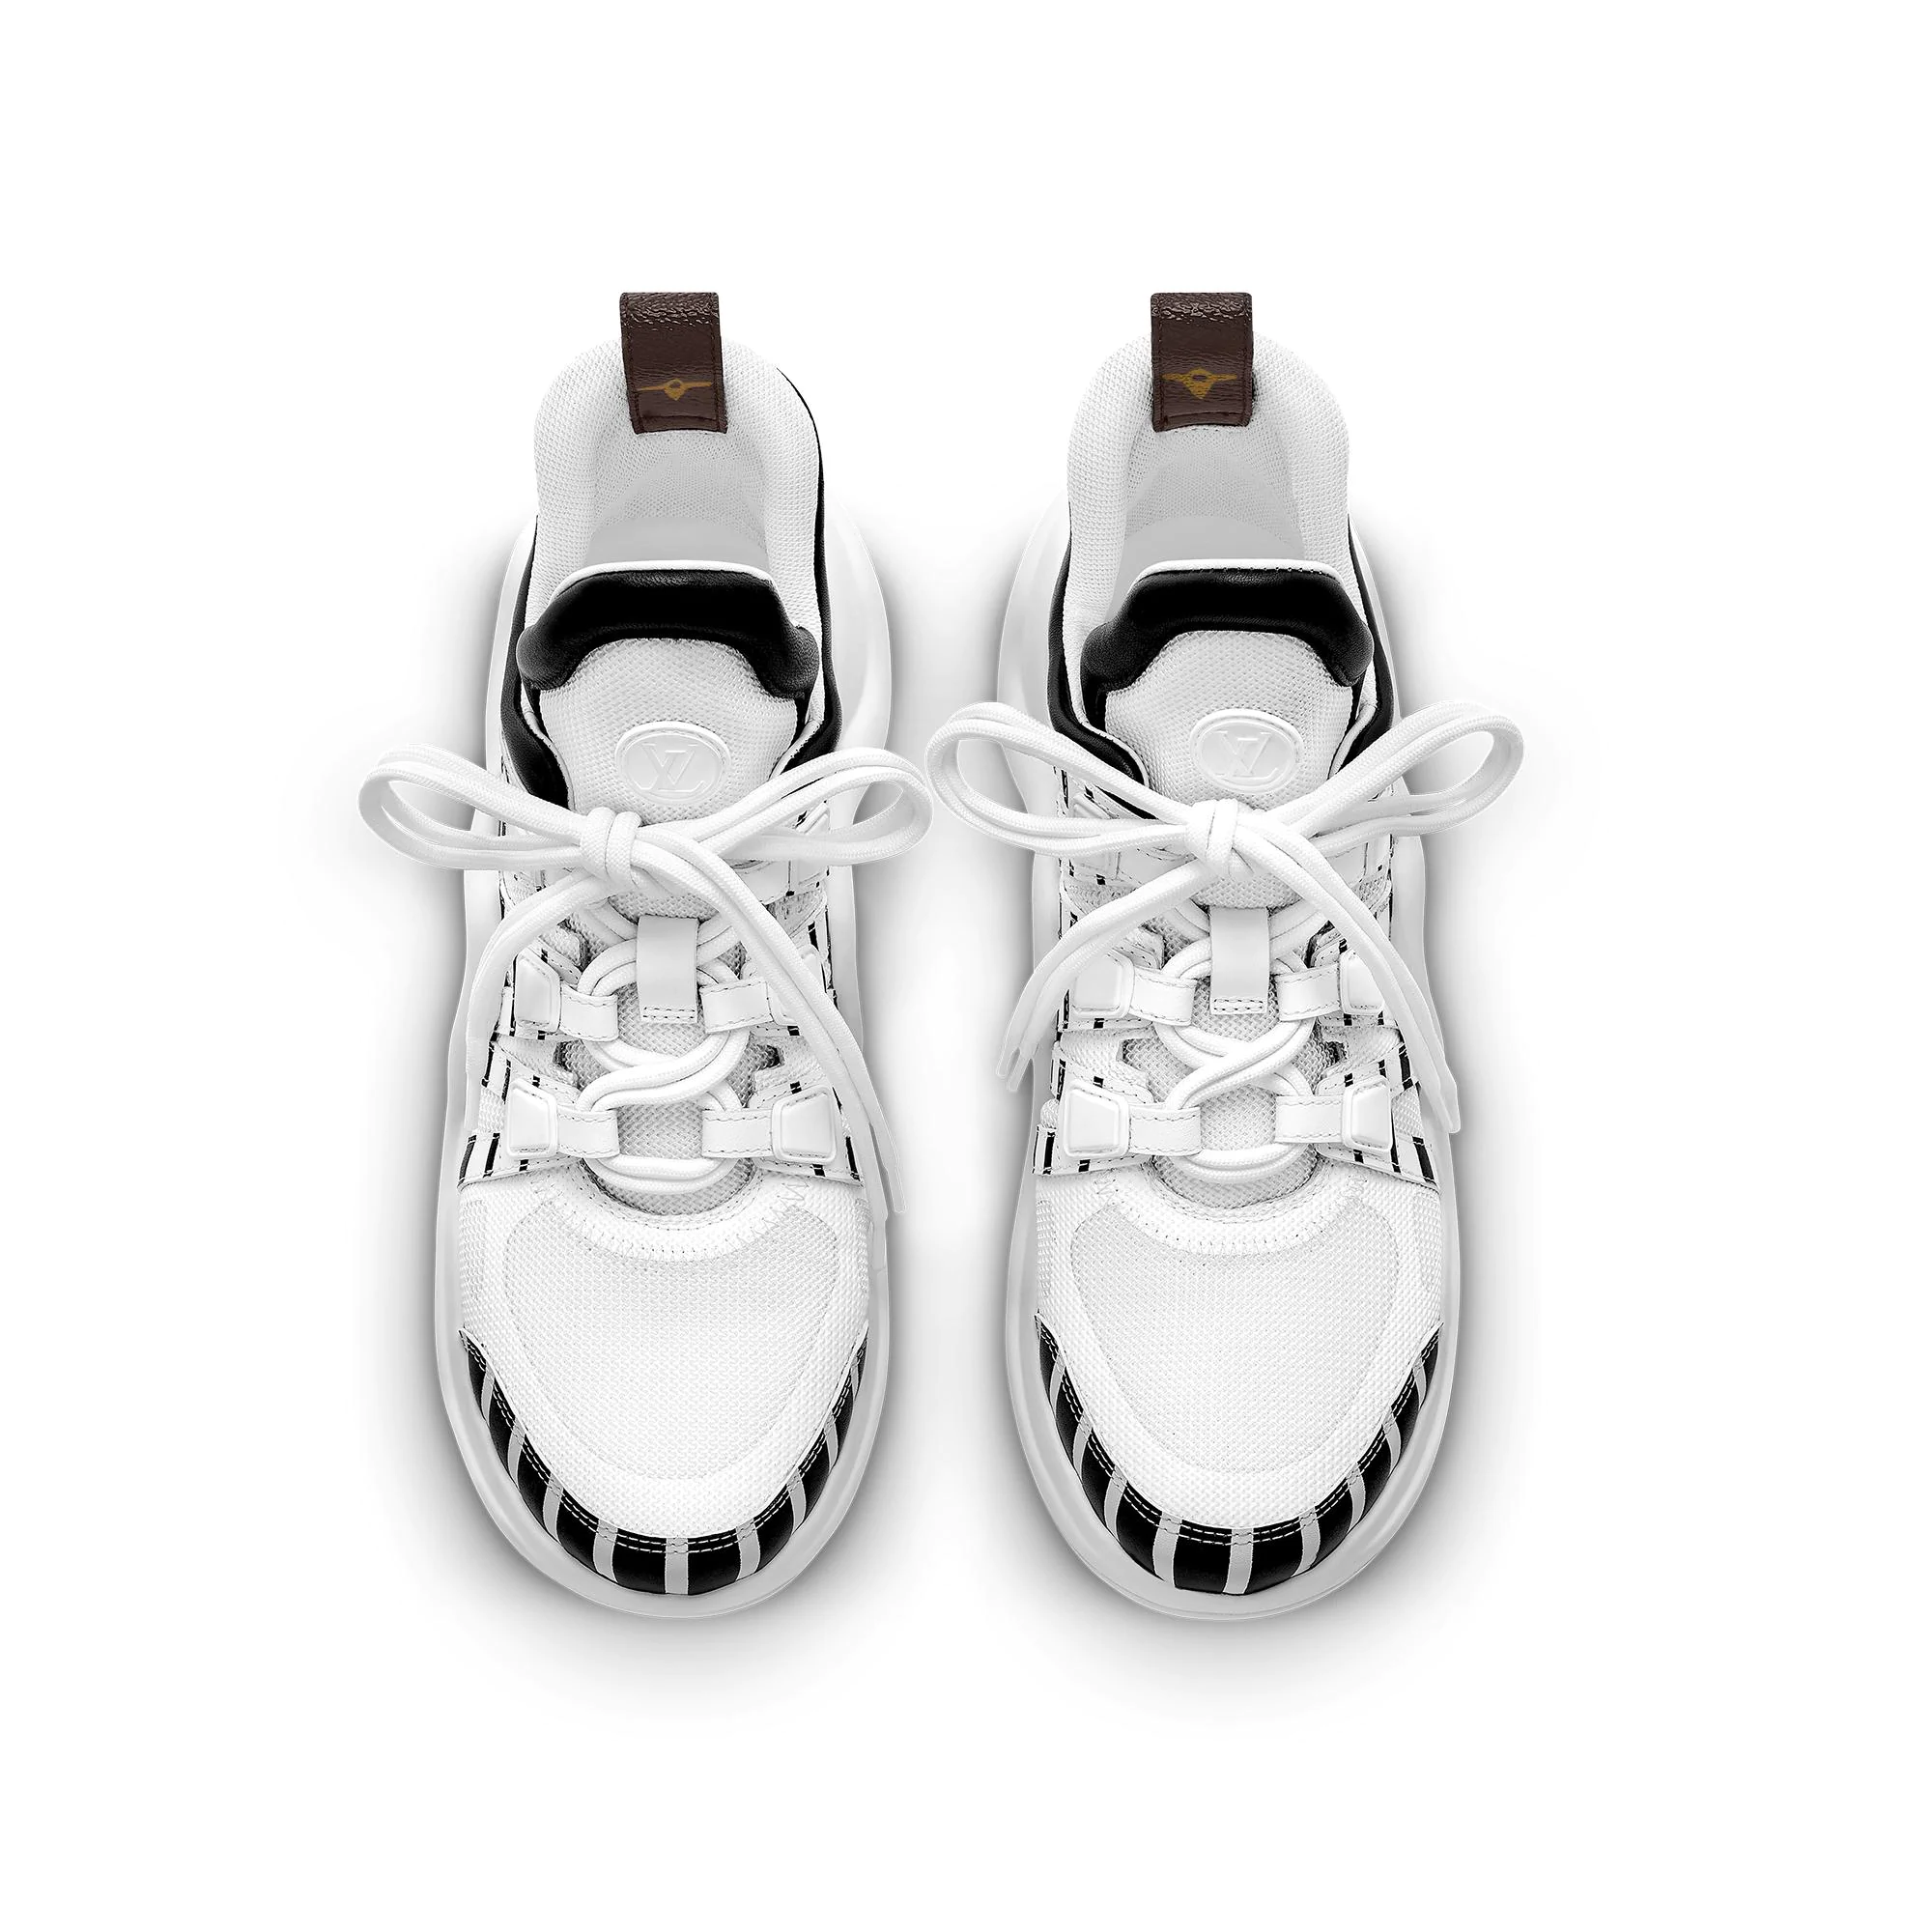 유럽직배송 루이비통 LOUIS VUITTON LV Archlight Trainers 1A67E0